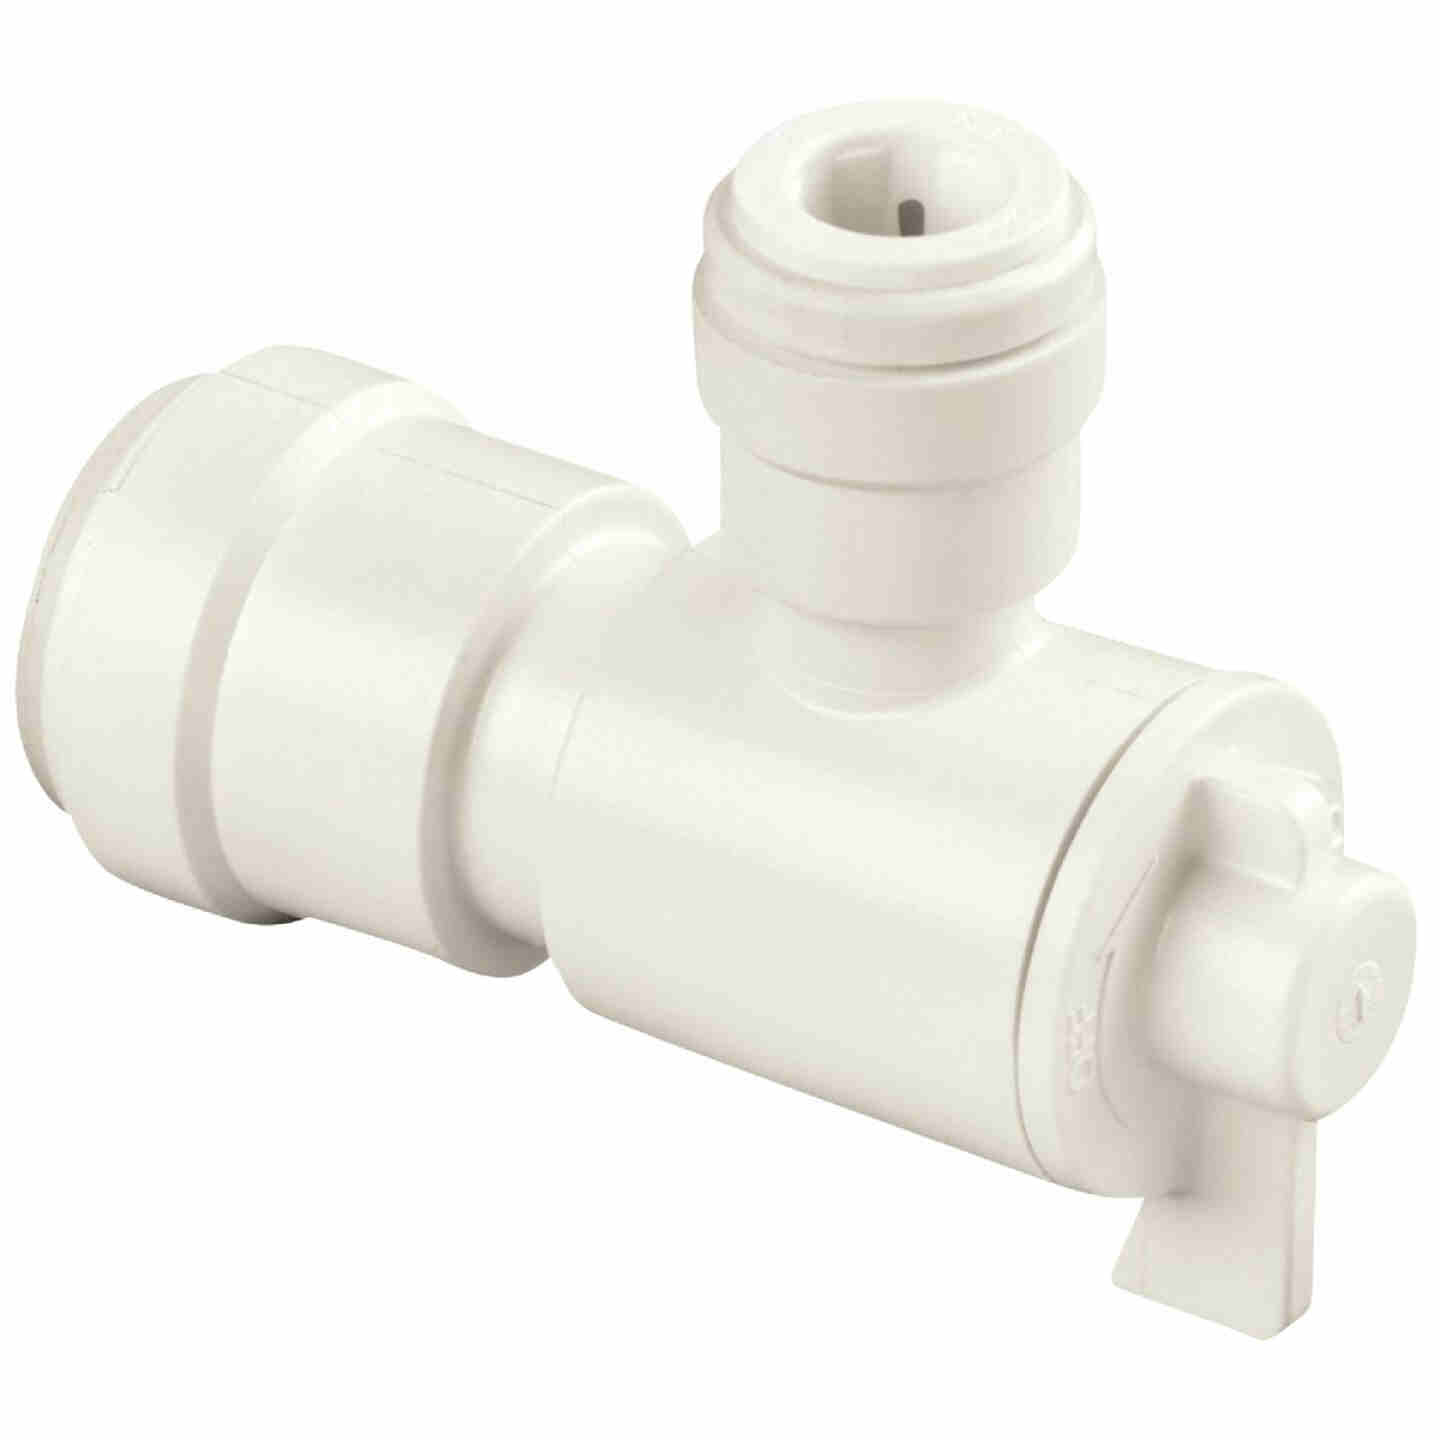 Watts 1/2 In. CTS X 1/2 In. OD Quick Connect Stop Angle Valve Image 1